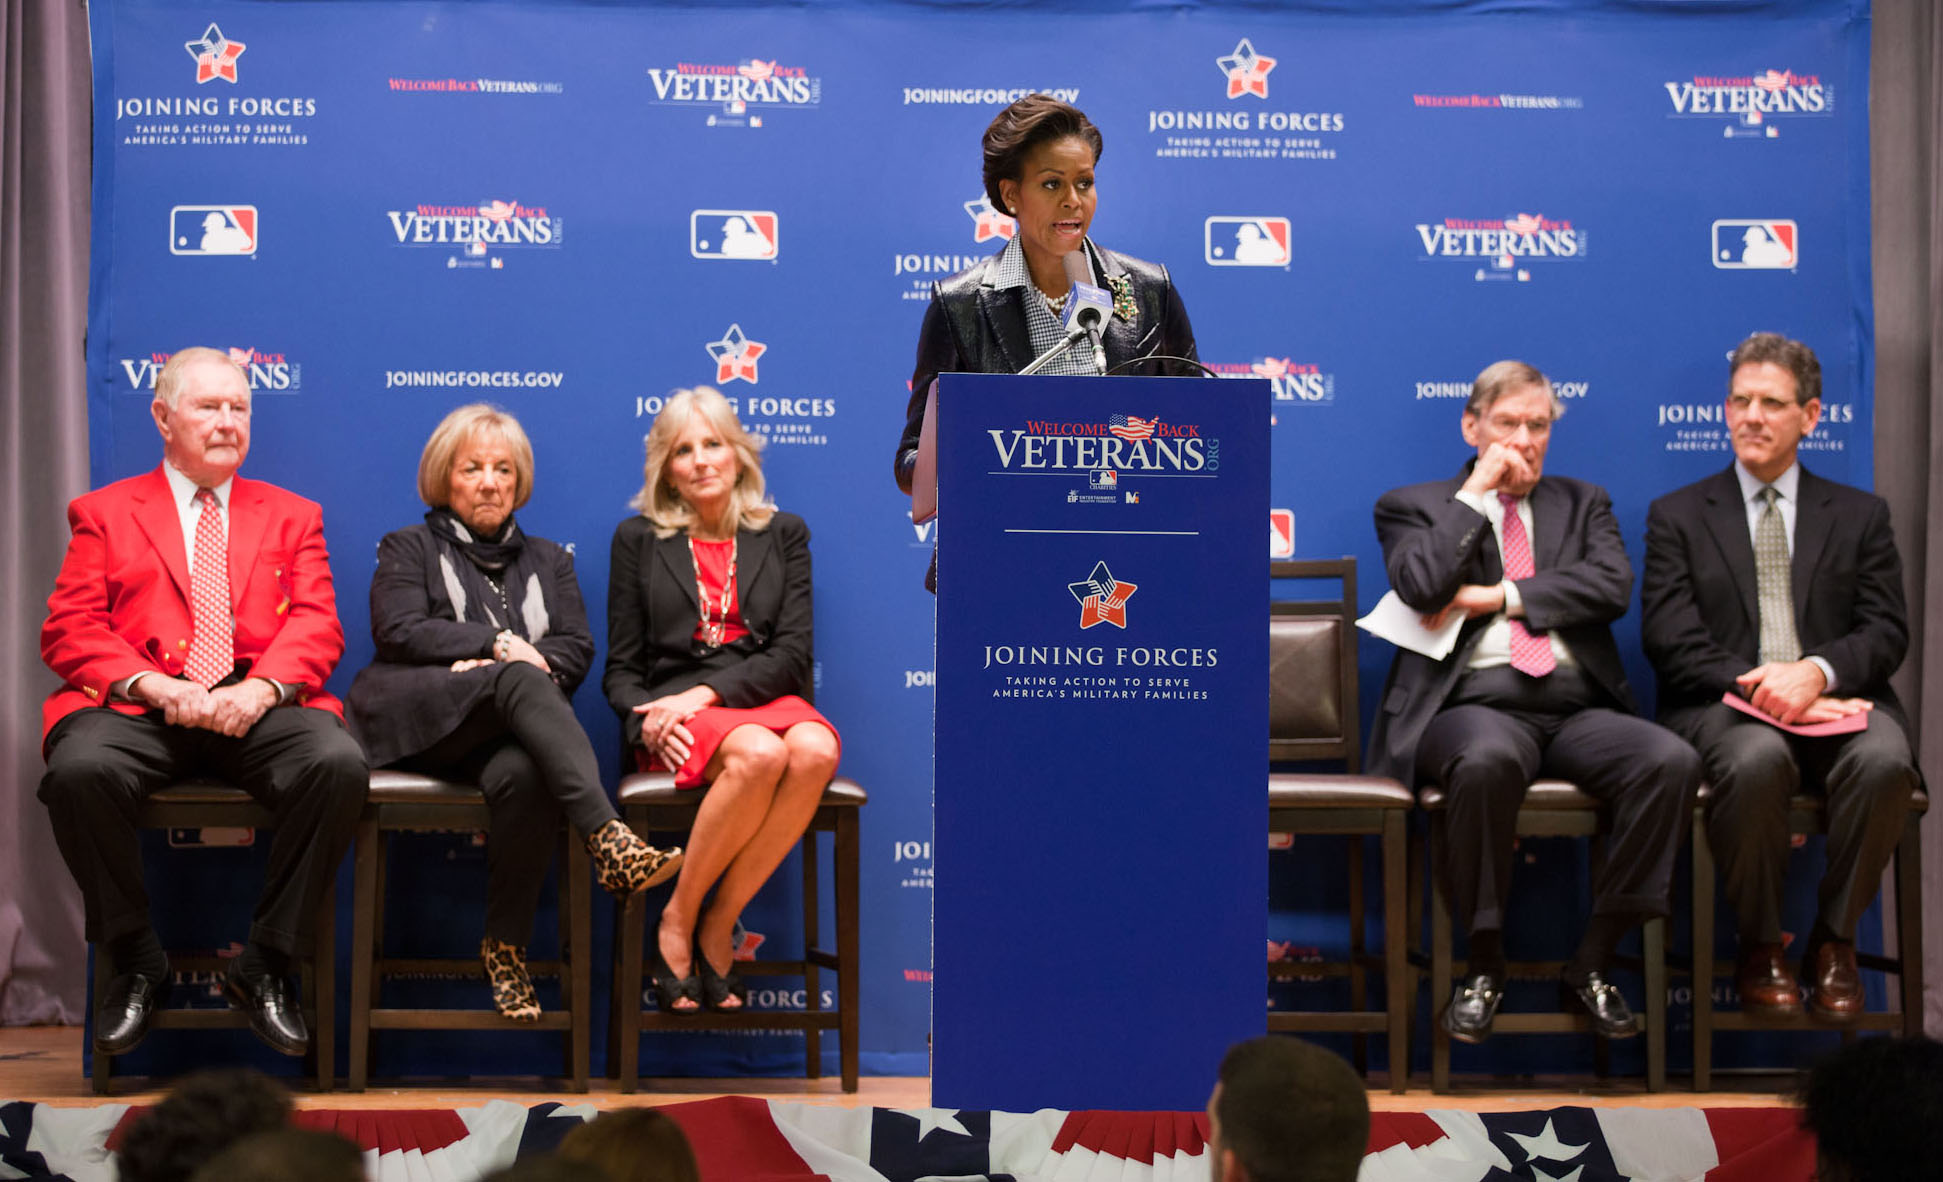 First Lady Michelle Obama and Dr. Jill Biden join representatives from Major League Baseball